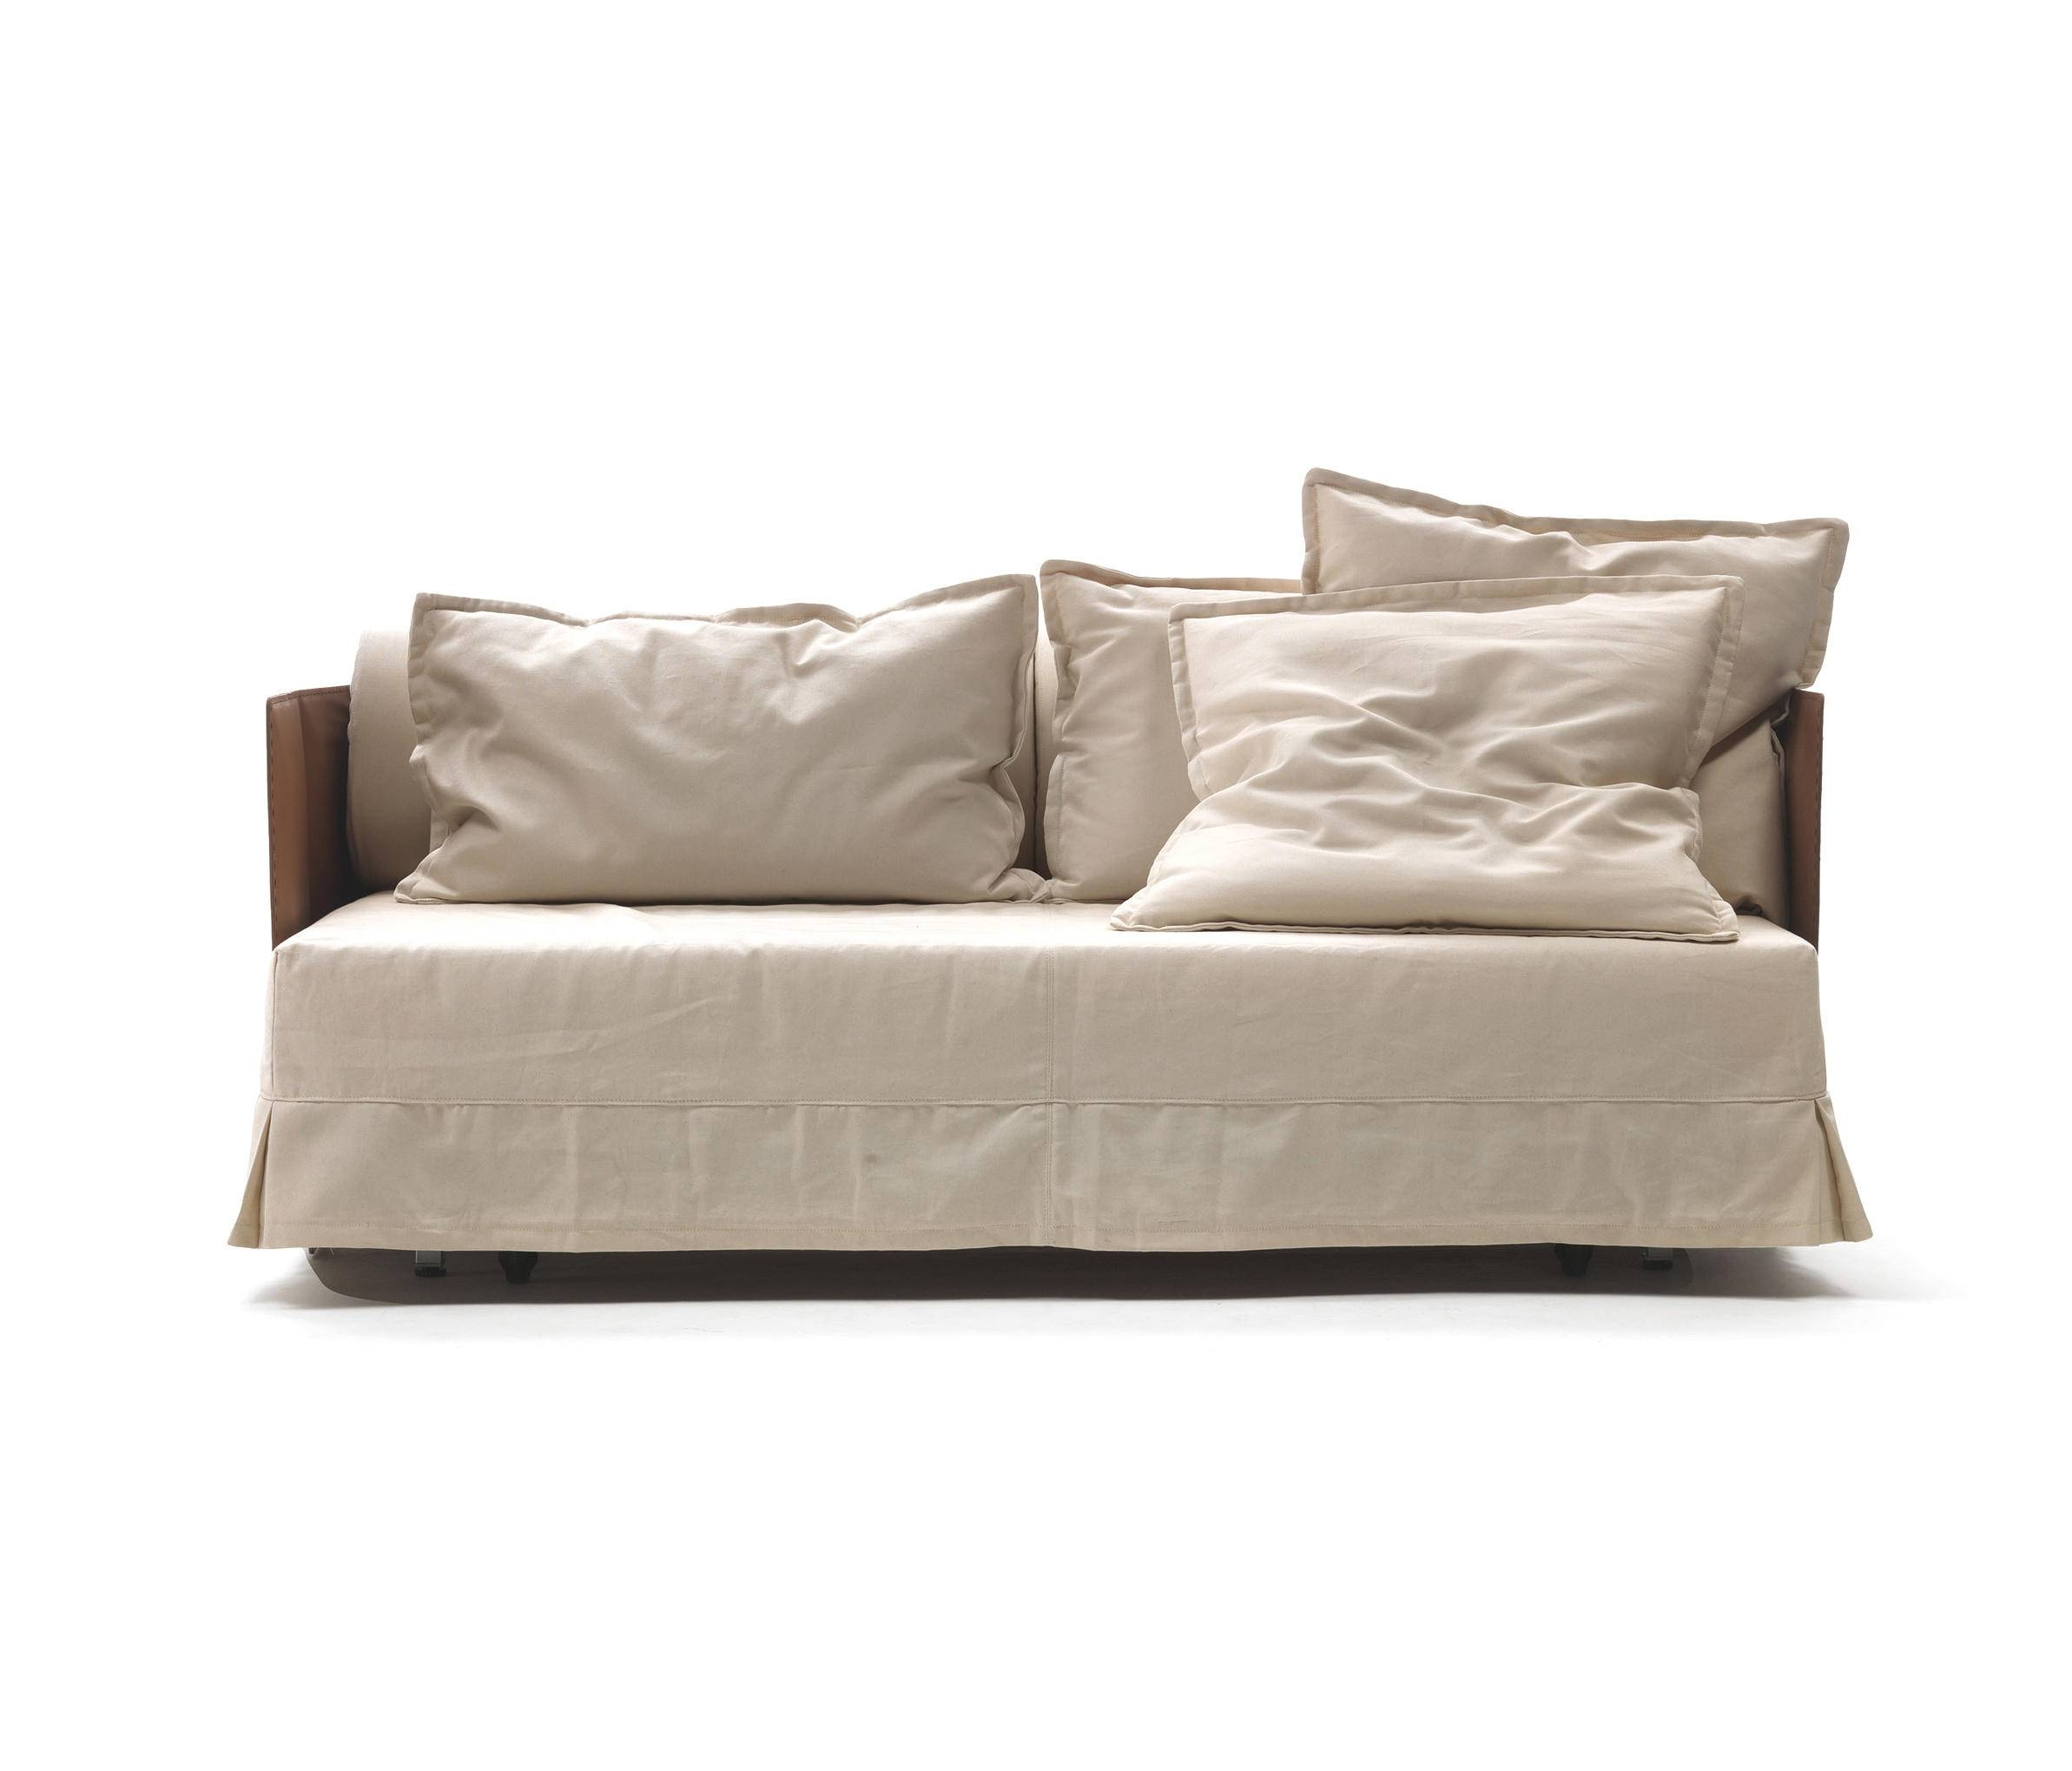 Eden - Sofa Beds From Flexform | Architonic in Flexform Sofas (Image 2 of 25)